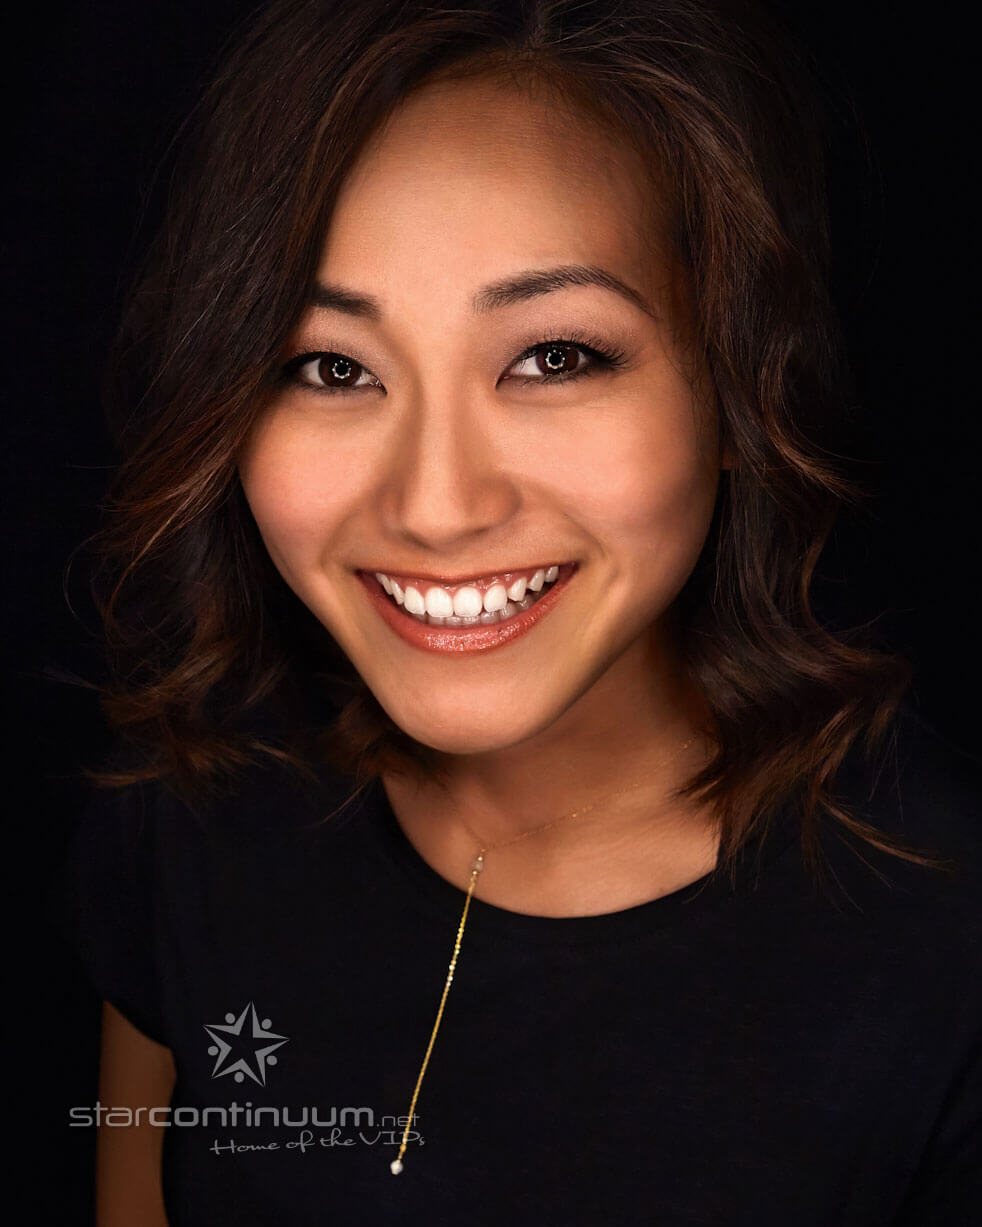 starcontinuum.net | Faces | Karen Fukuhara